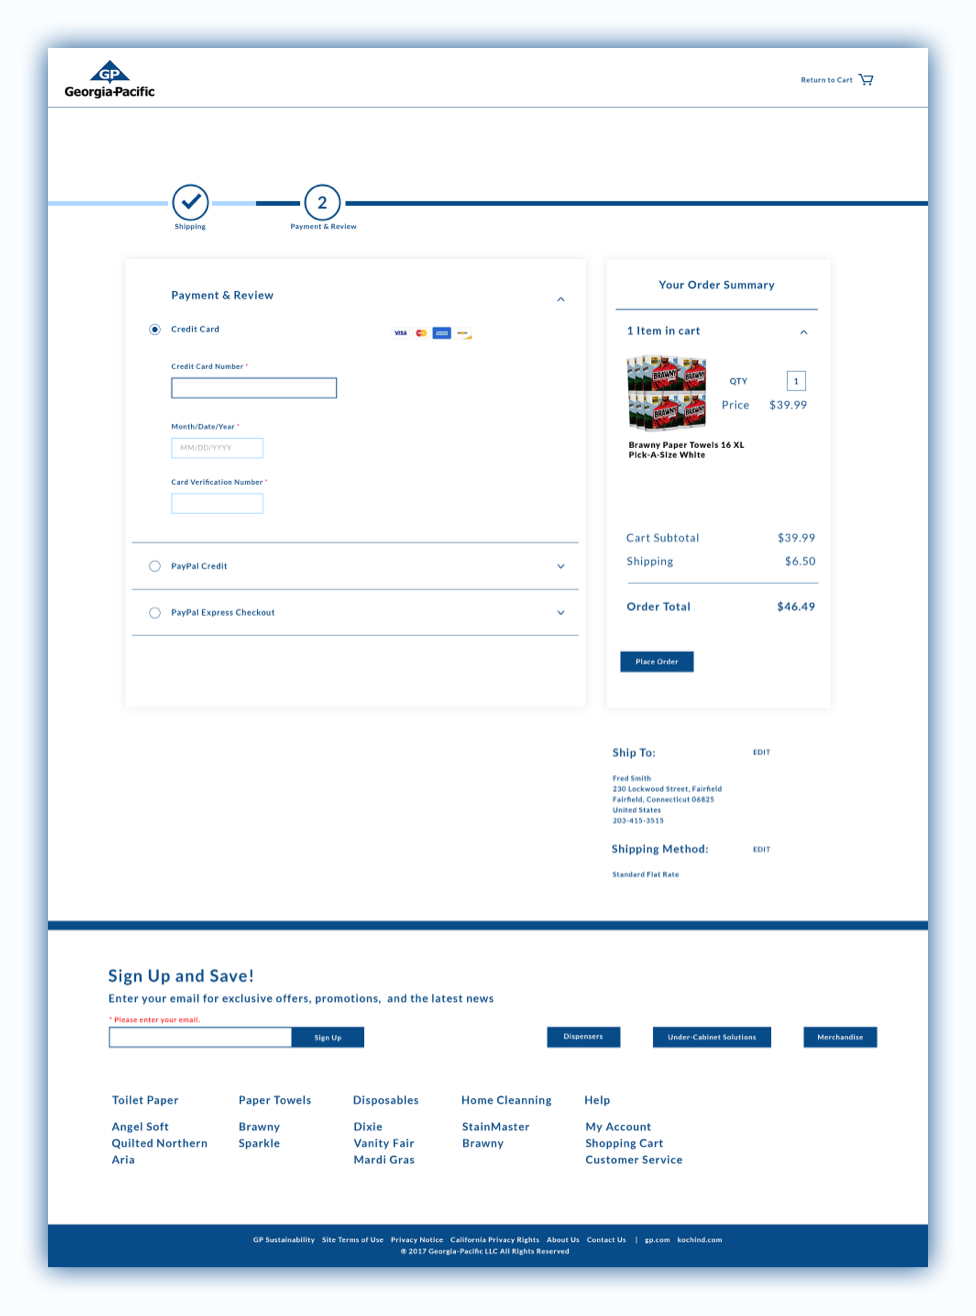 georgia-pacific-payments-and-review-ui-mockup